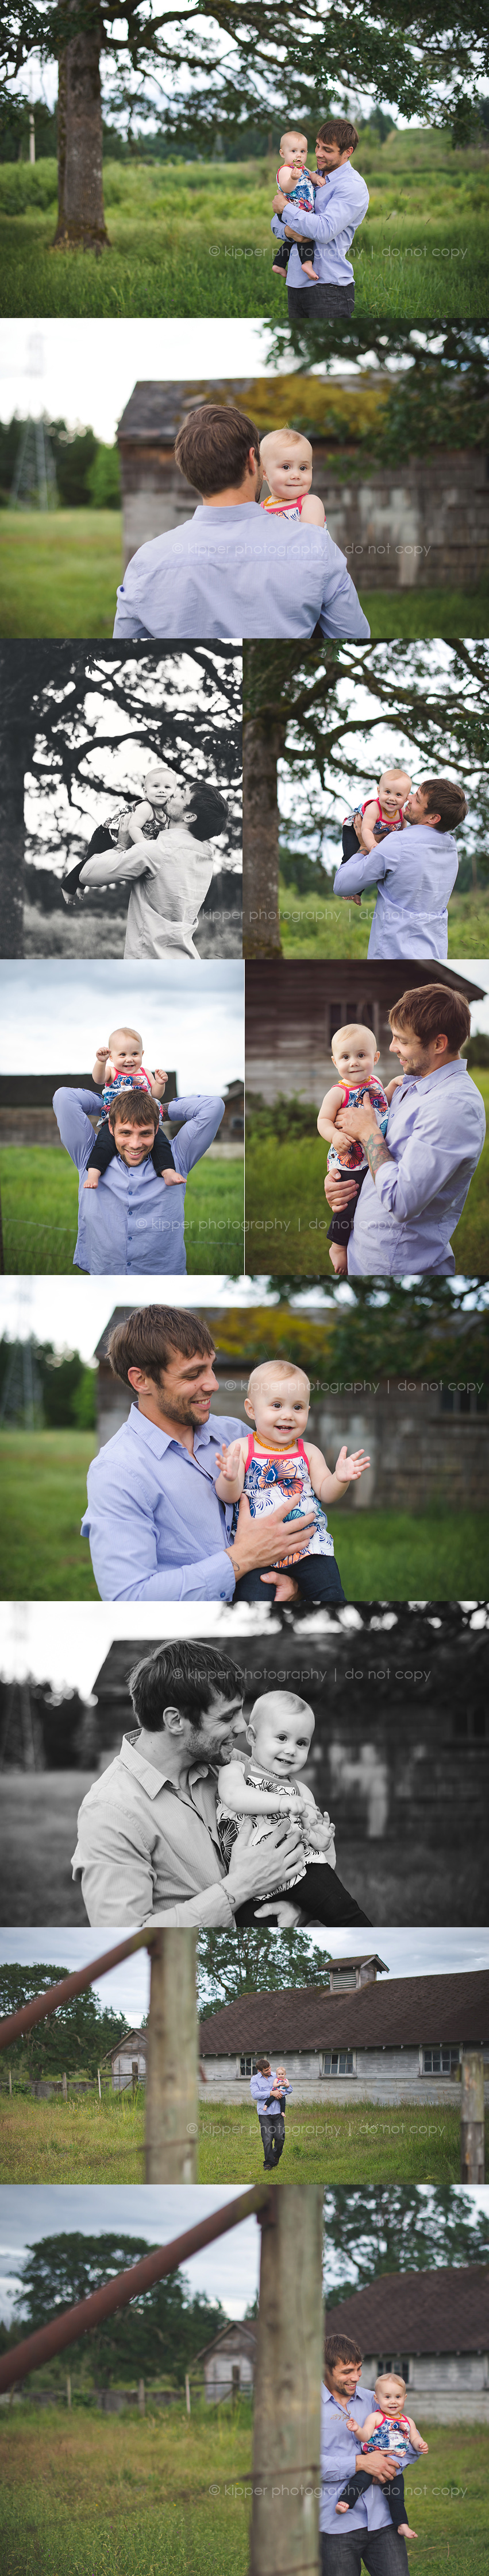 olympia family photographer